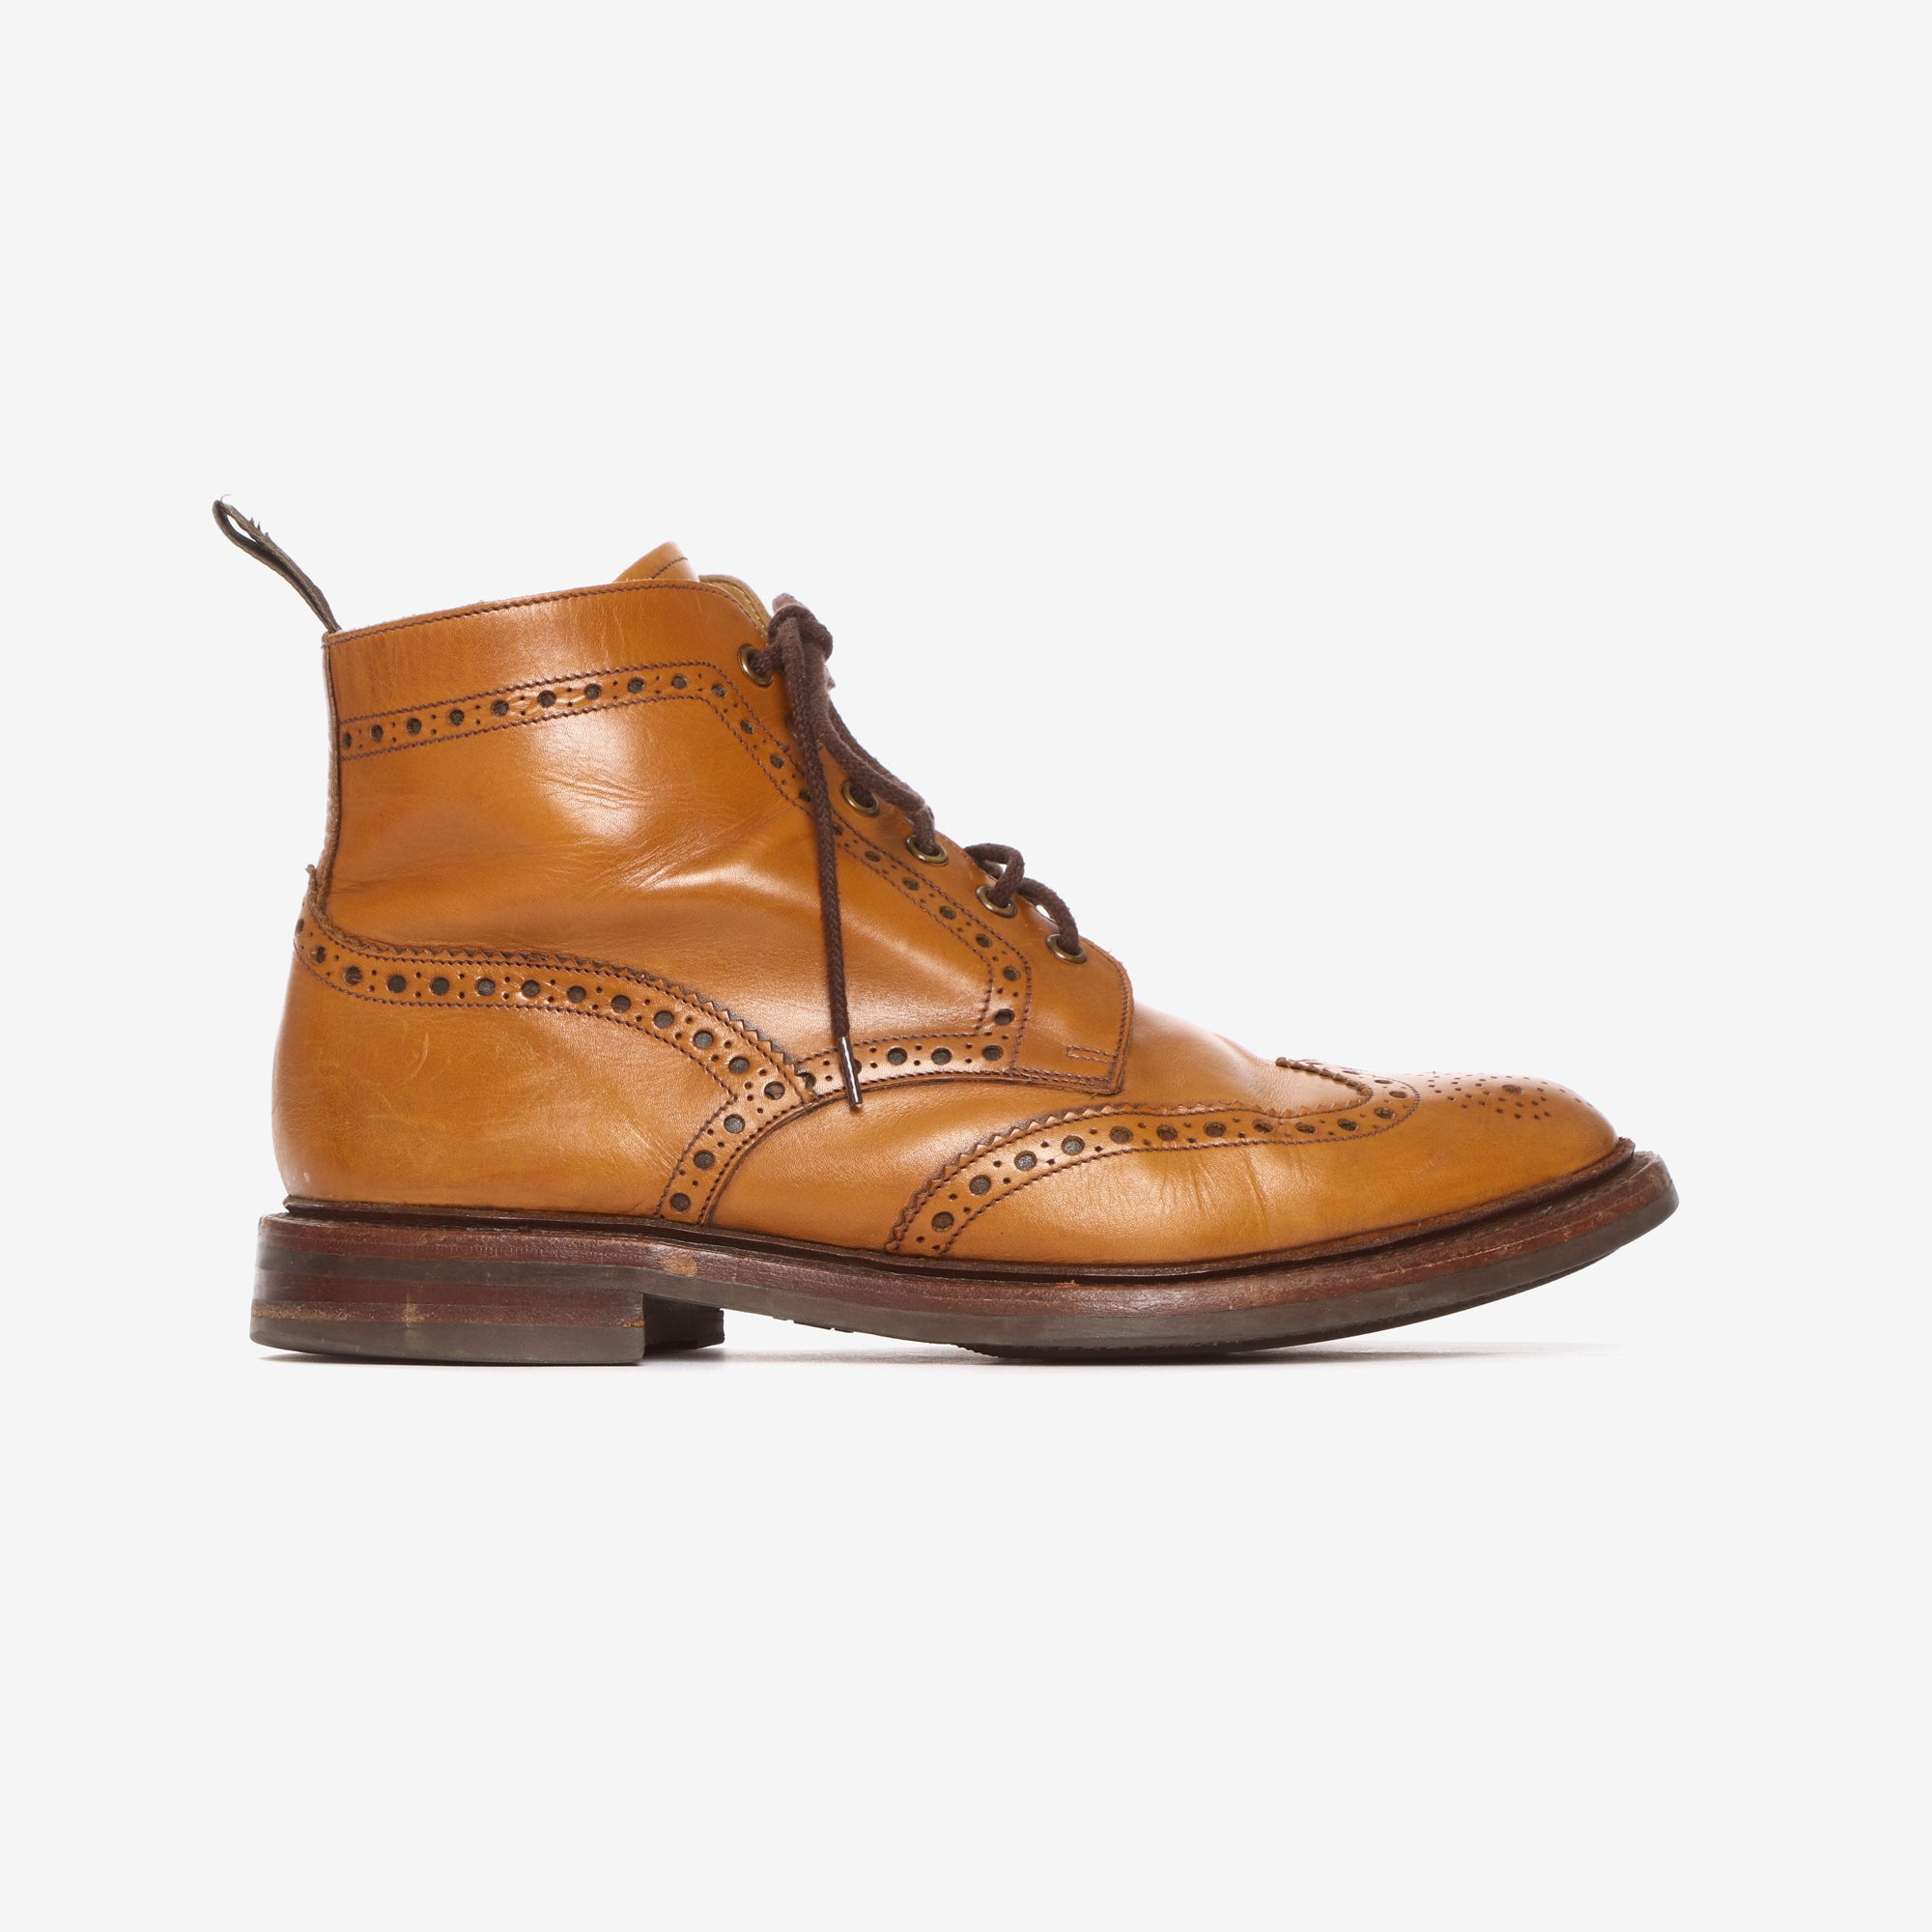 1880 Bedale Brogue Boots